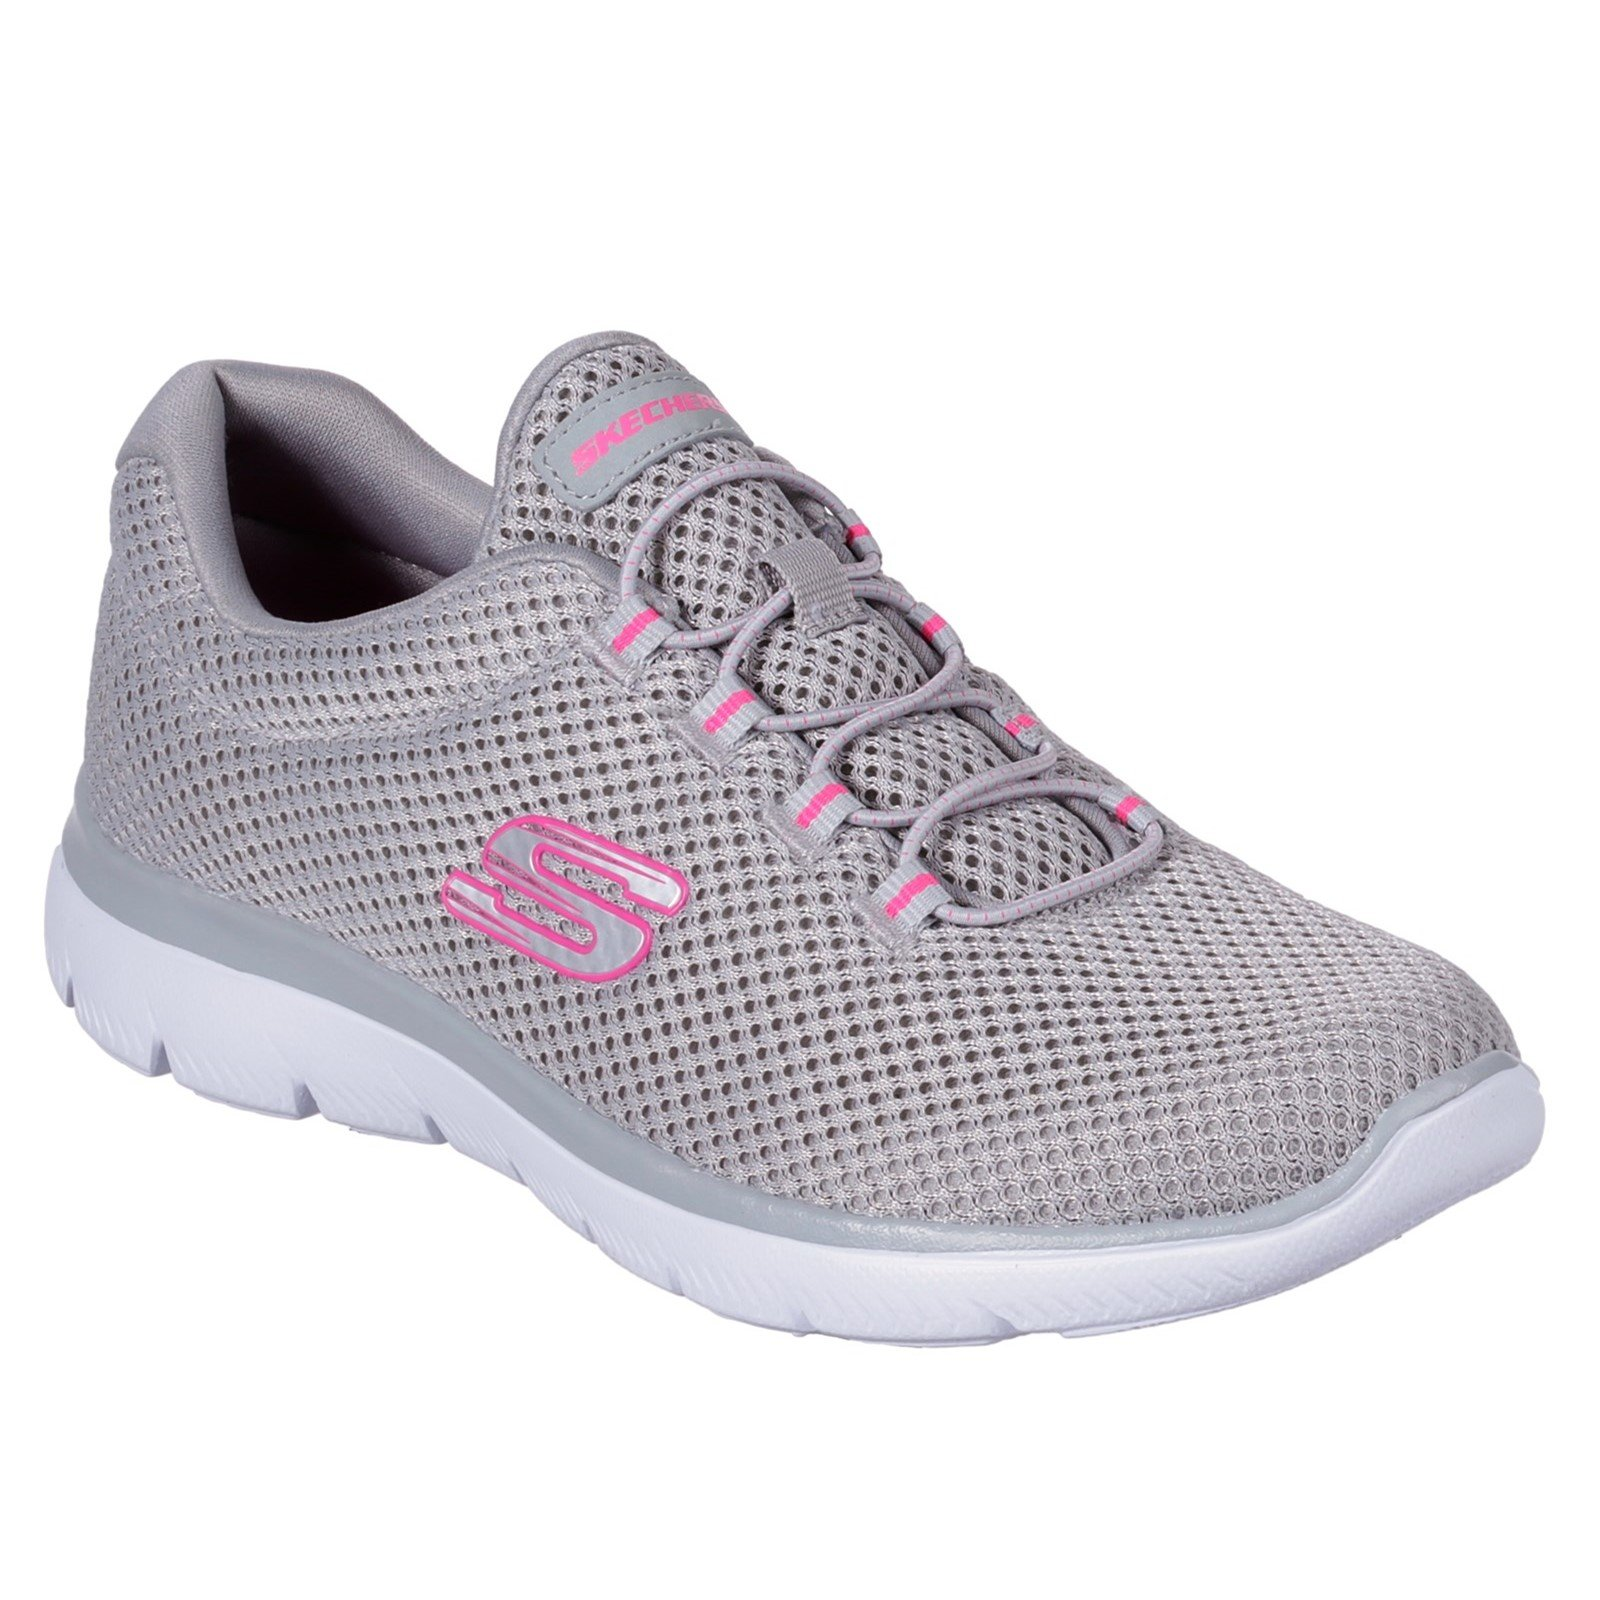 Skechers Women's Summits Slip On Trainer Various Colours 30708 - Grey/Hot pink 5